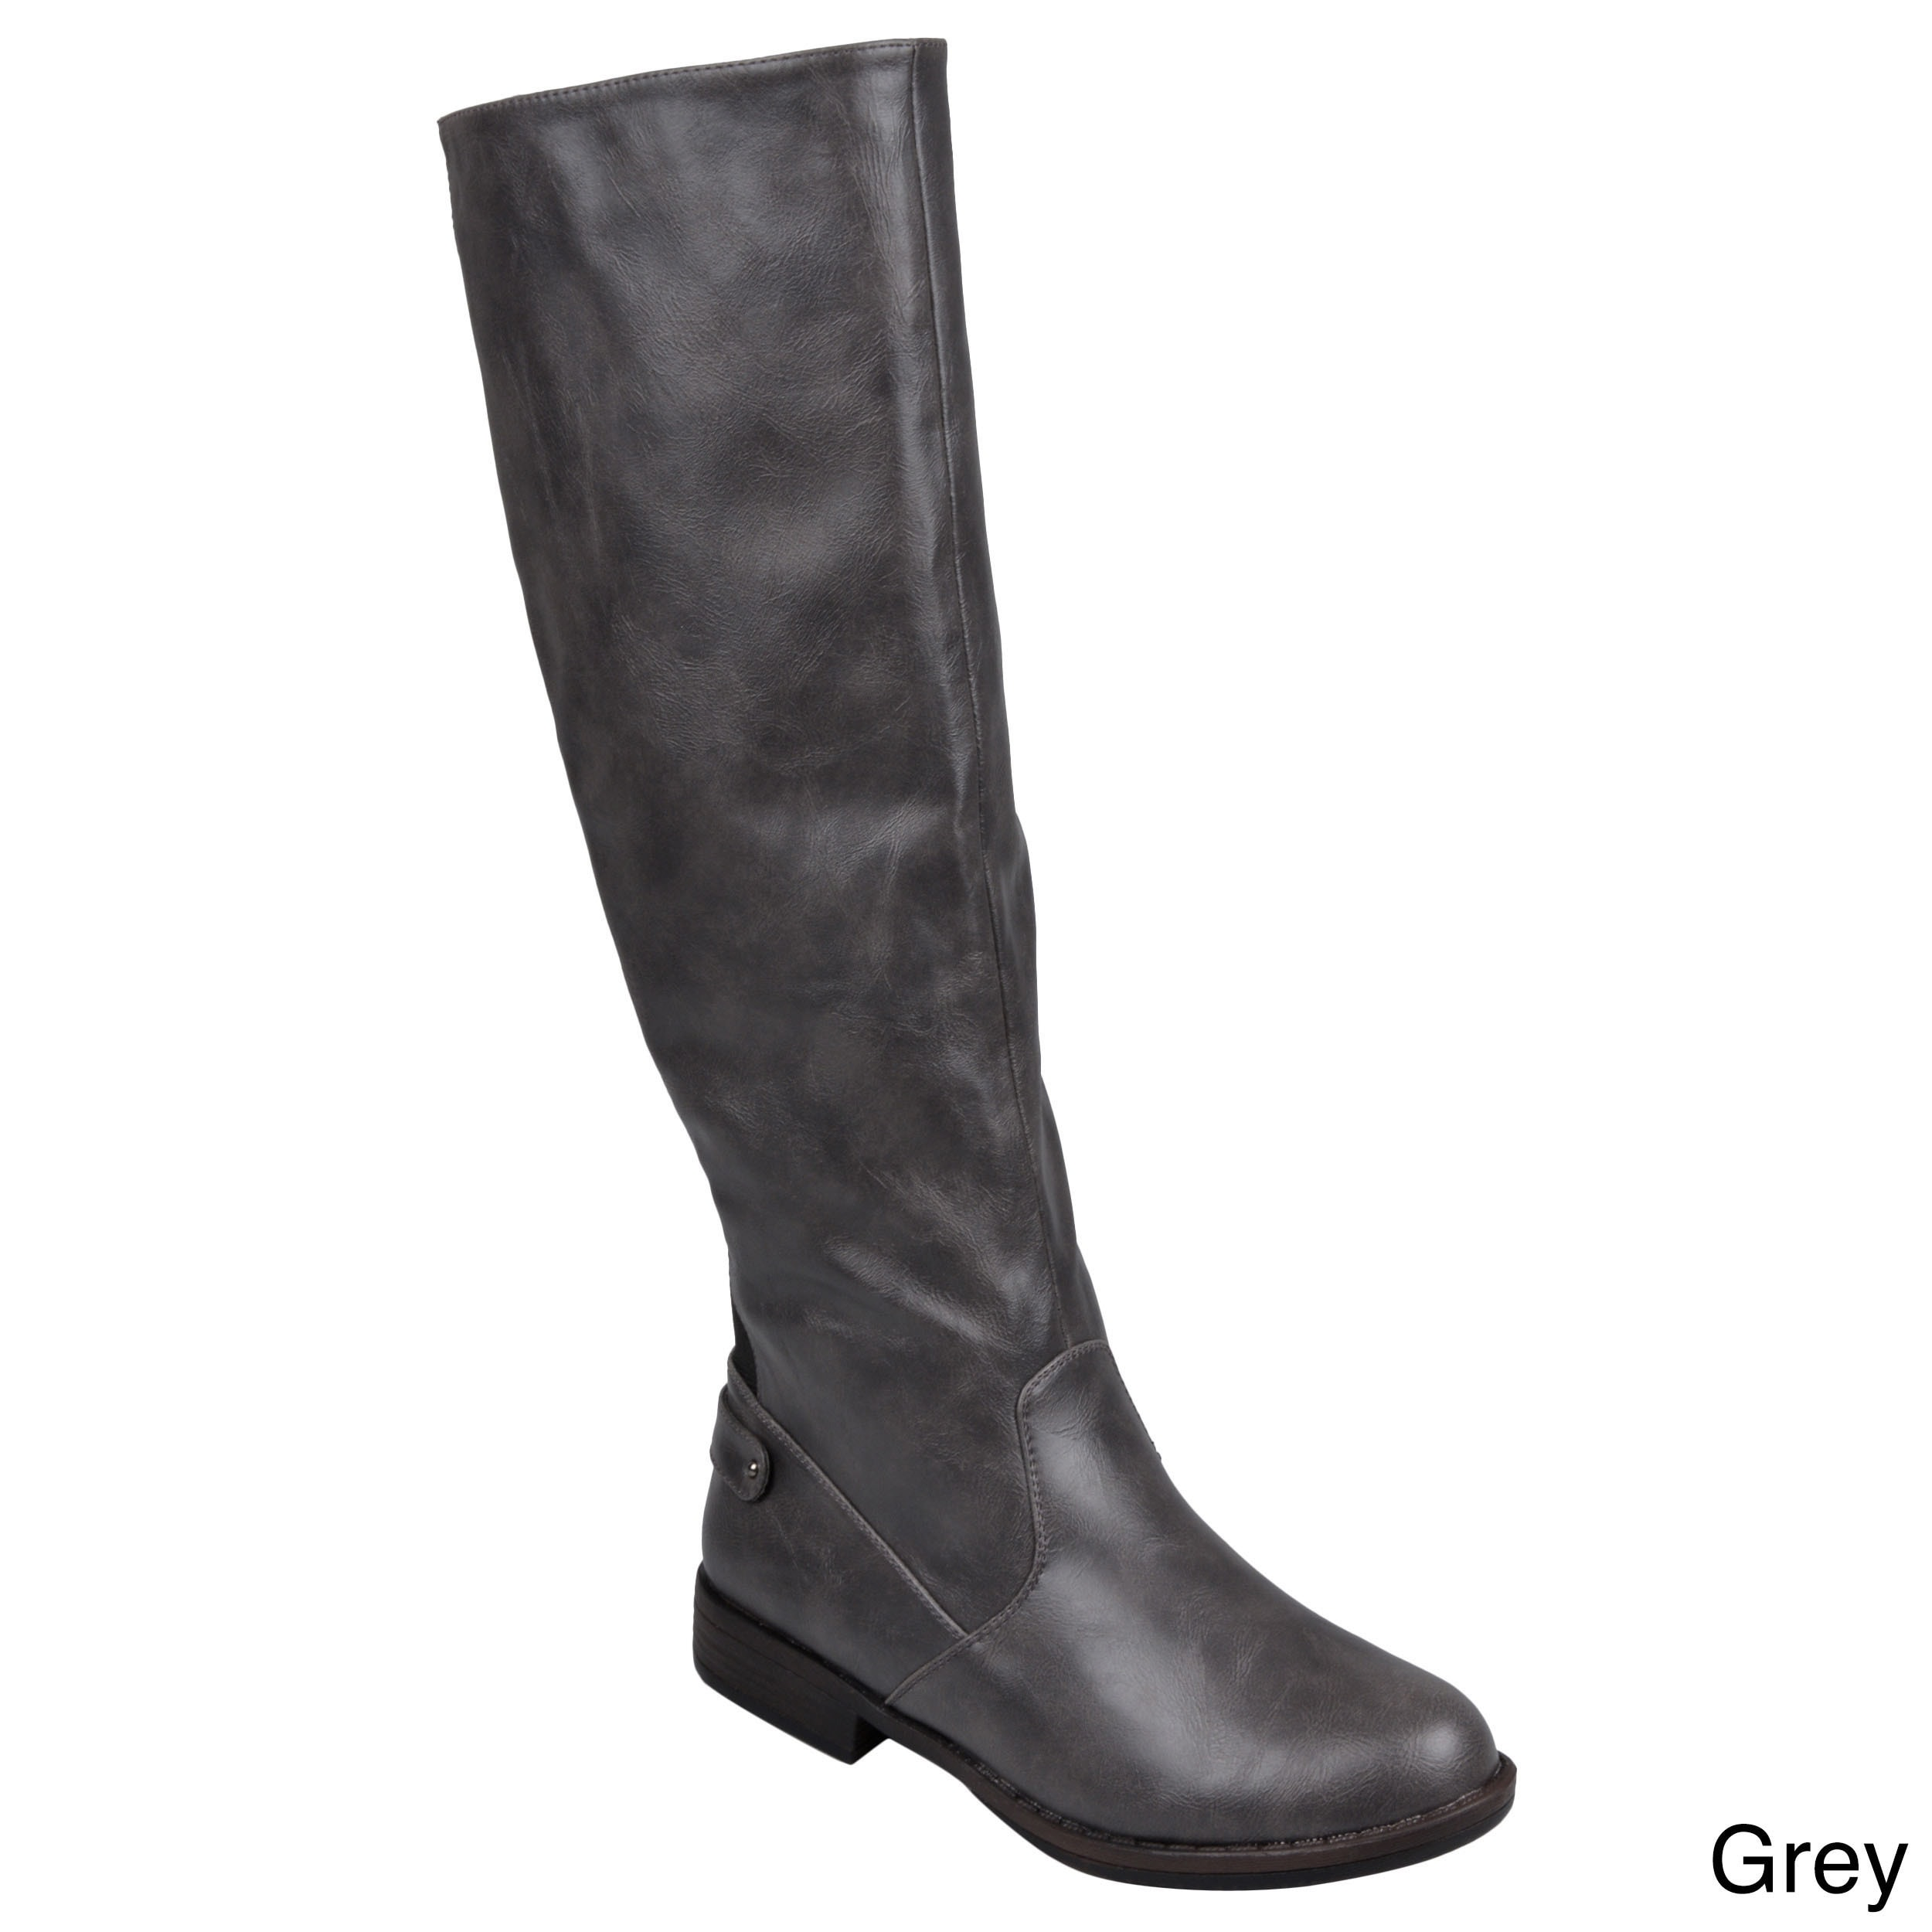 ee814953329783 Shop Journee Collection Women's 'Lynn' Riding Boot - Free Shipping Today -  Overstock - 8342911